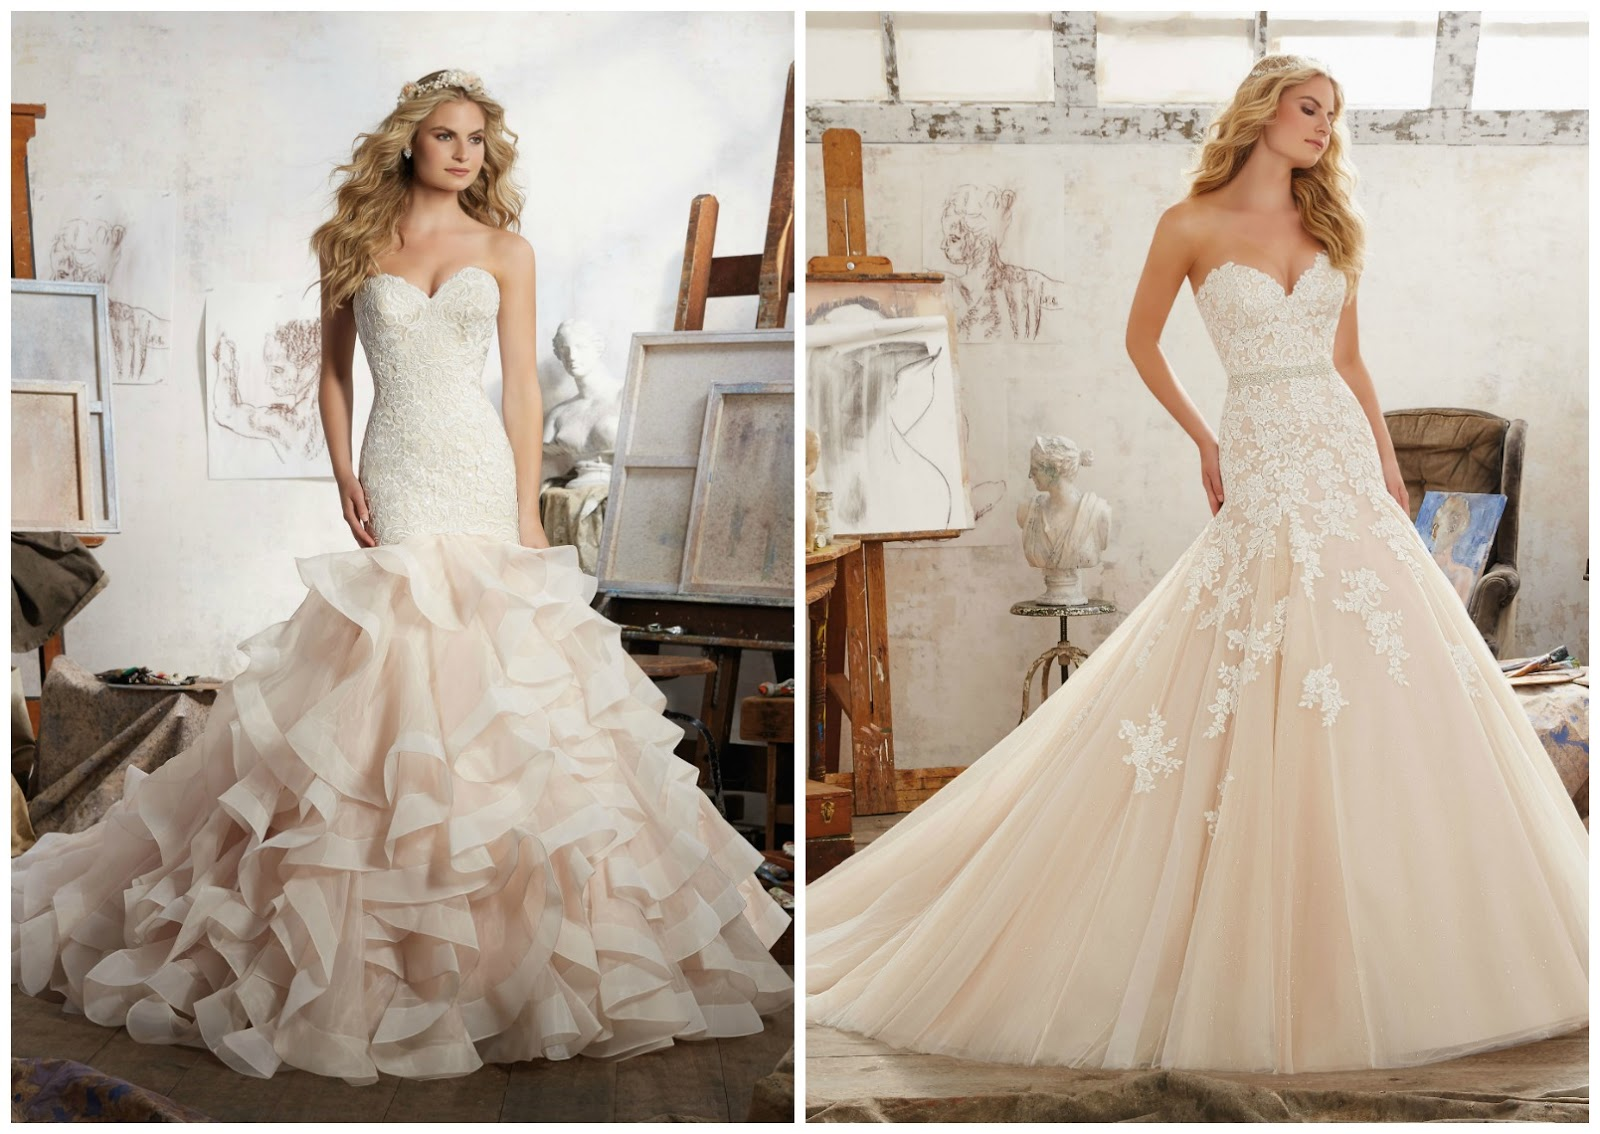 Brides of america online store wedding dresses come in for Wedding dresses in south florida